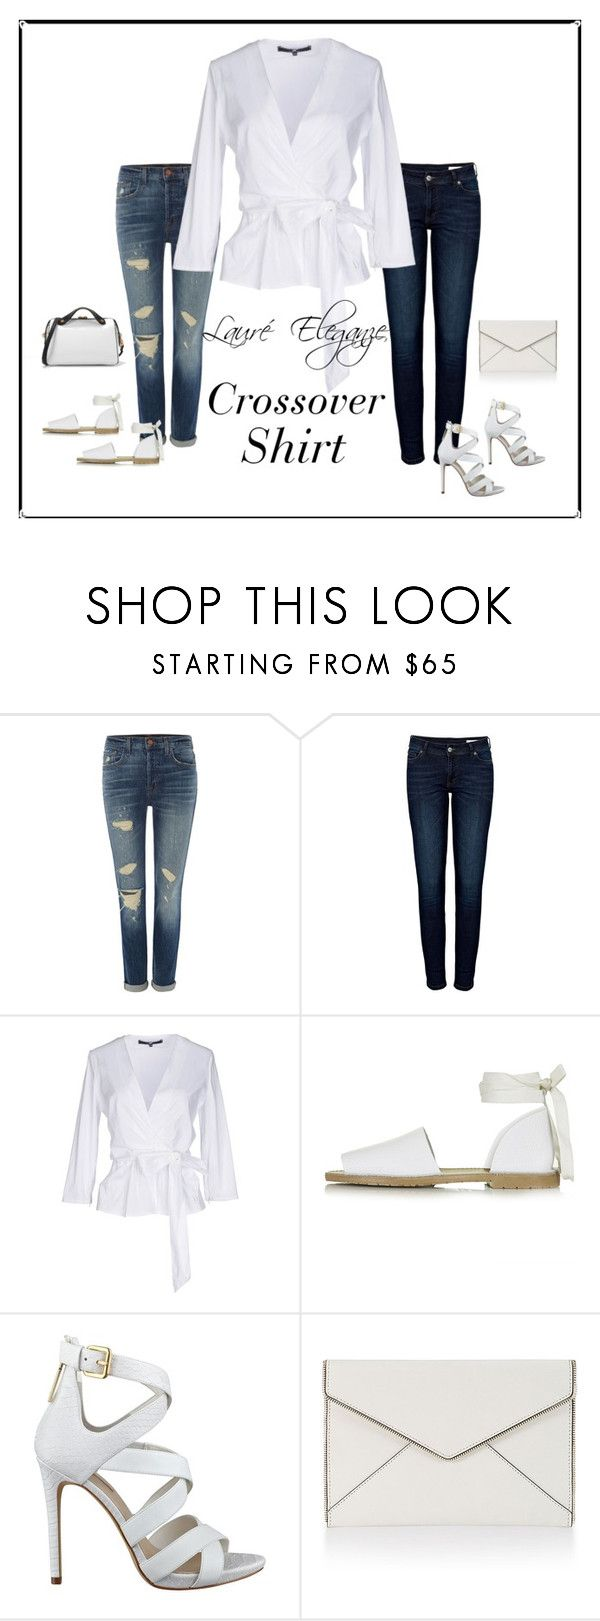 """""""The White Crossover Shirt..."""" by rene-clarke ❤ liked on Polyvore featuring J Brand, Anine Bing, Elisabetta Franchi, Topshop, GUESS, Rebecca Minkoff and CHARLES & KEITH"""